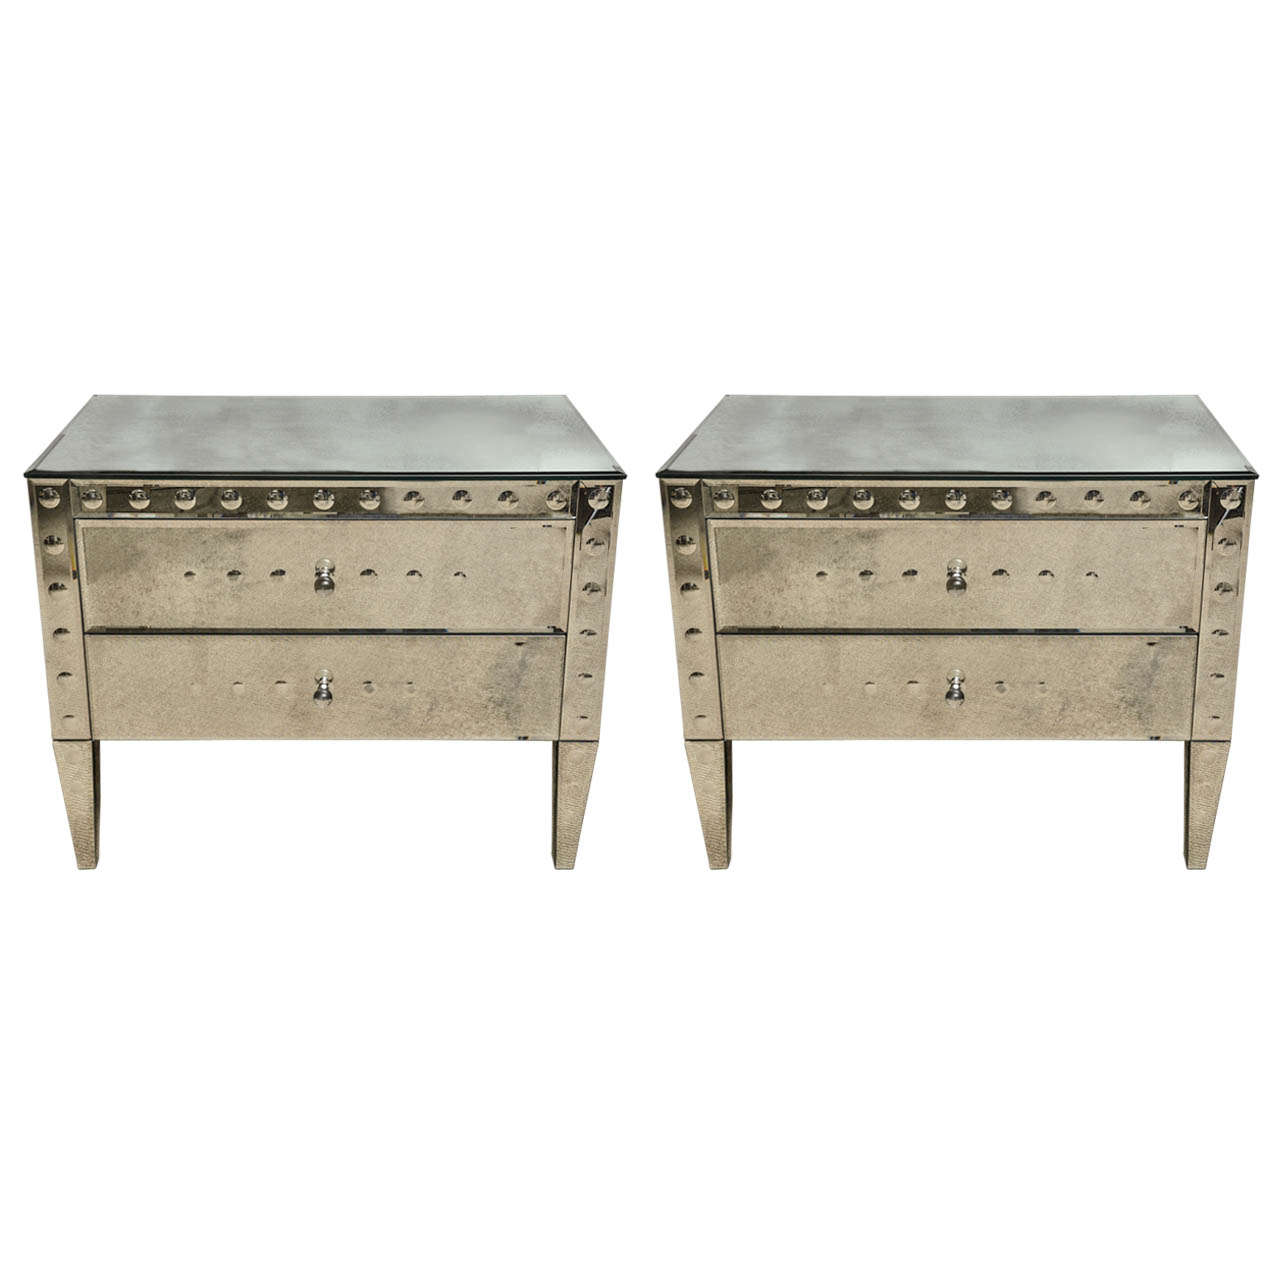 pair of italian exquisitely made mirrored 2 drawer bedside commodes for sale at 1stdibs. Black Bedroom Furniture Sets. Home Design Ideas